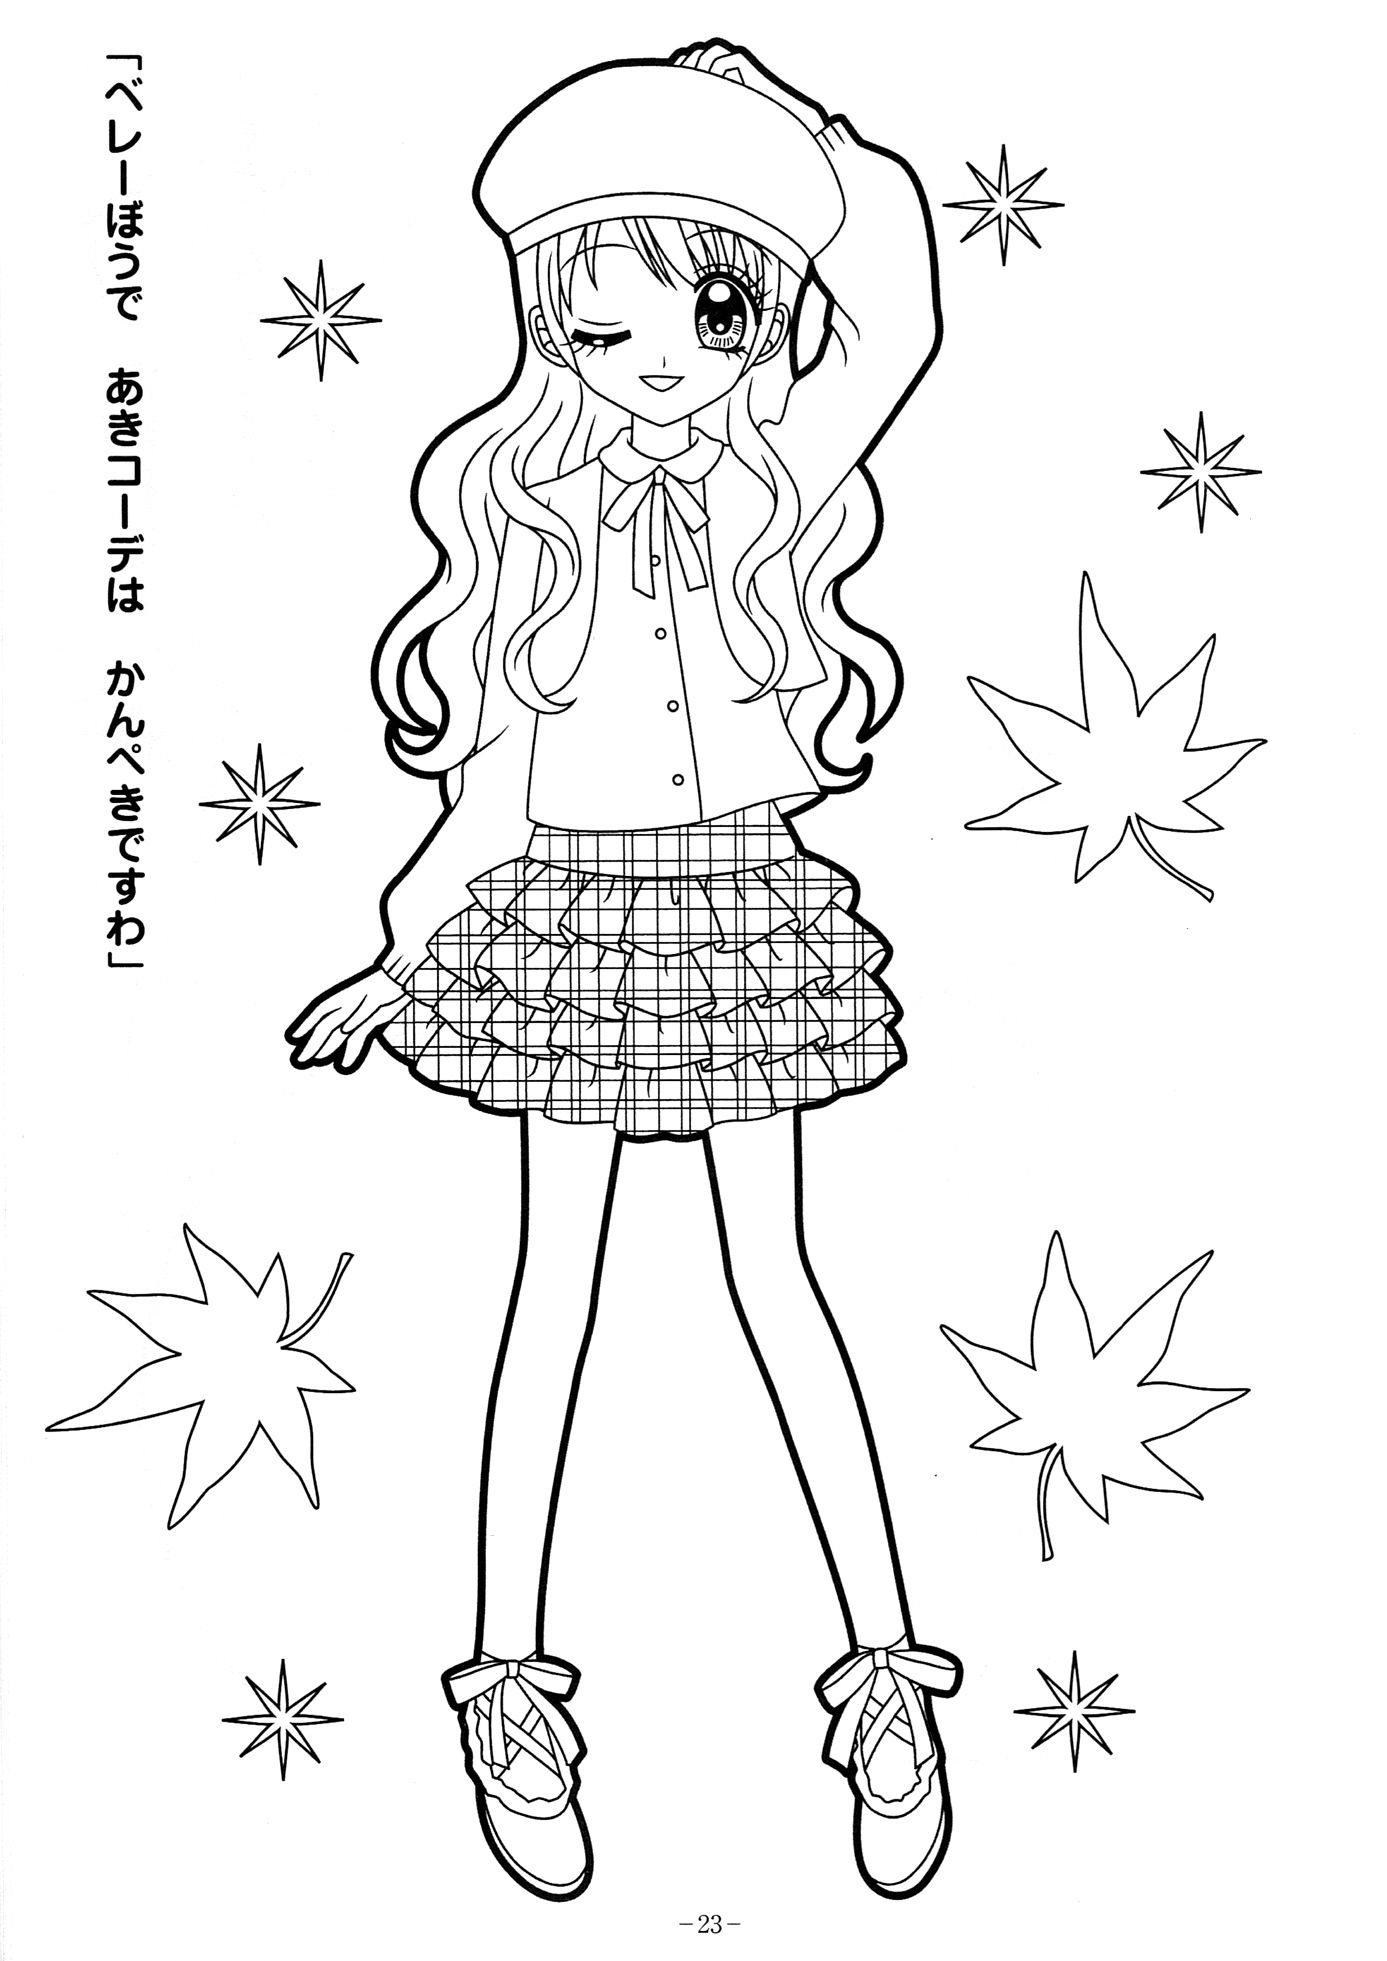 cute anime girl coloring pages anime colouring pages for kids to Print | harmony in nature  cute anime girl coloring pages